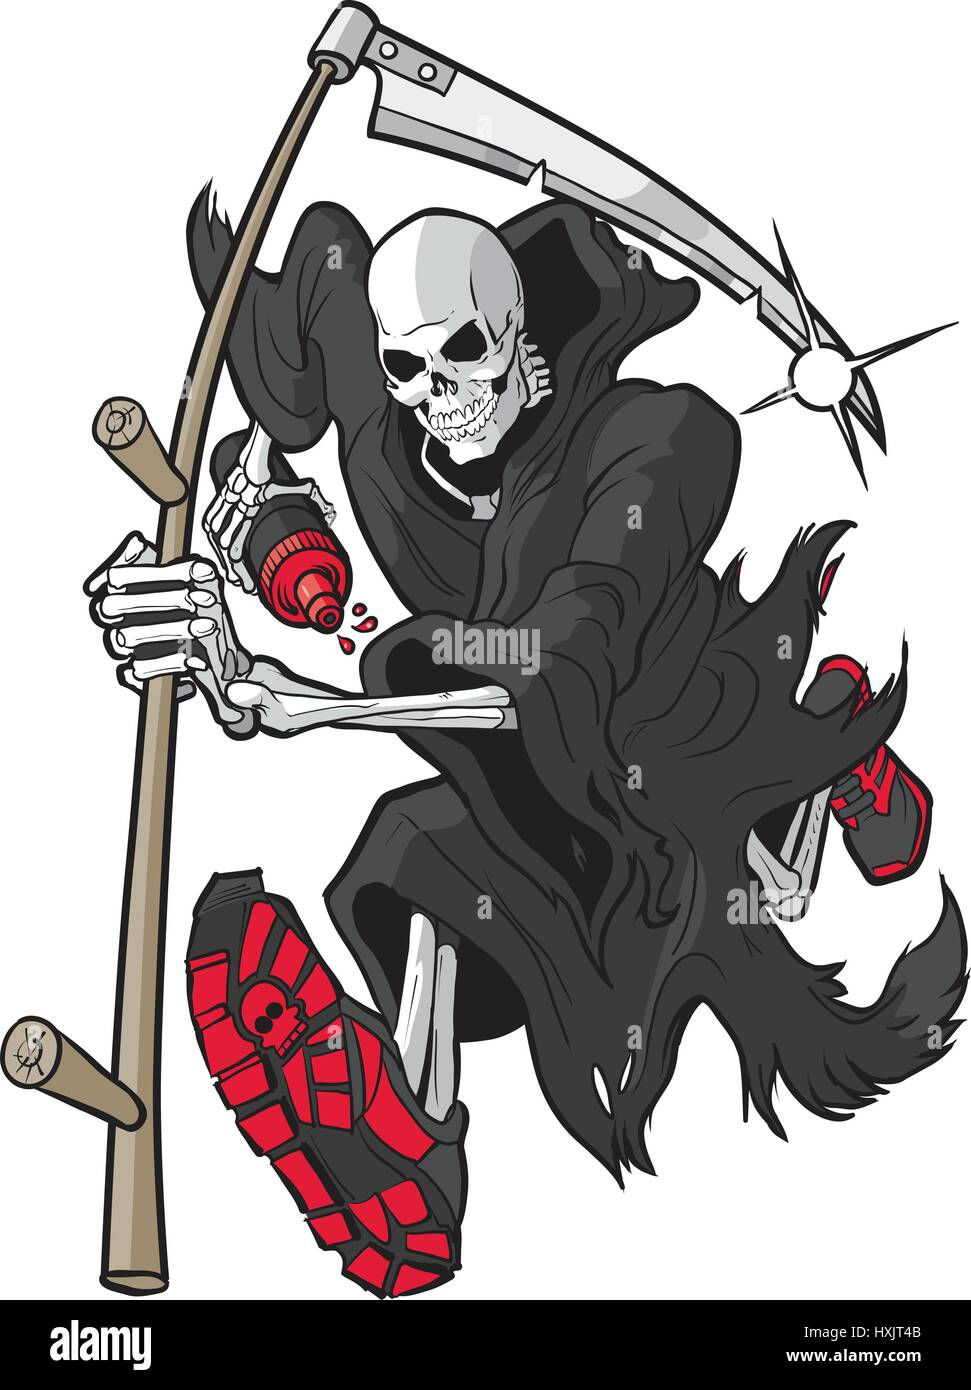 Vector cartoon clip art illustration of a Grim Reaper or Angel of Death running forward toward the viewer with a - Stock Image